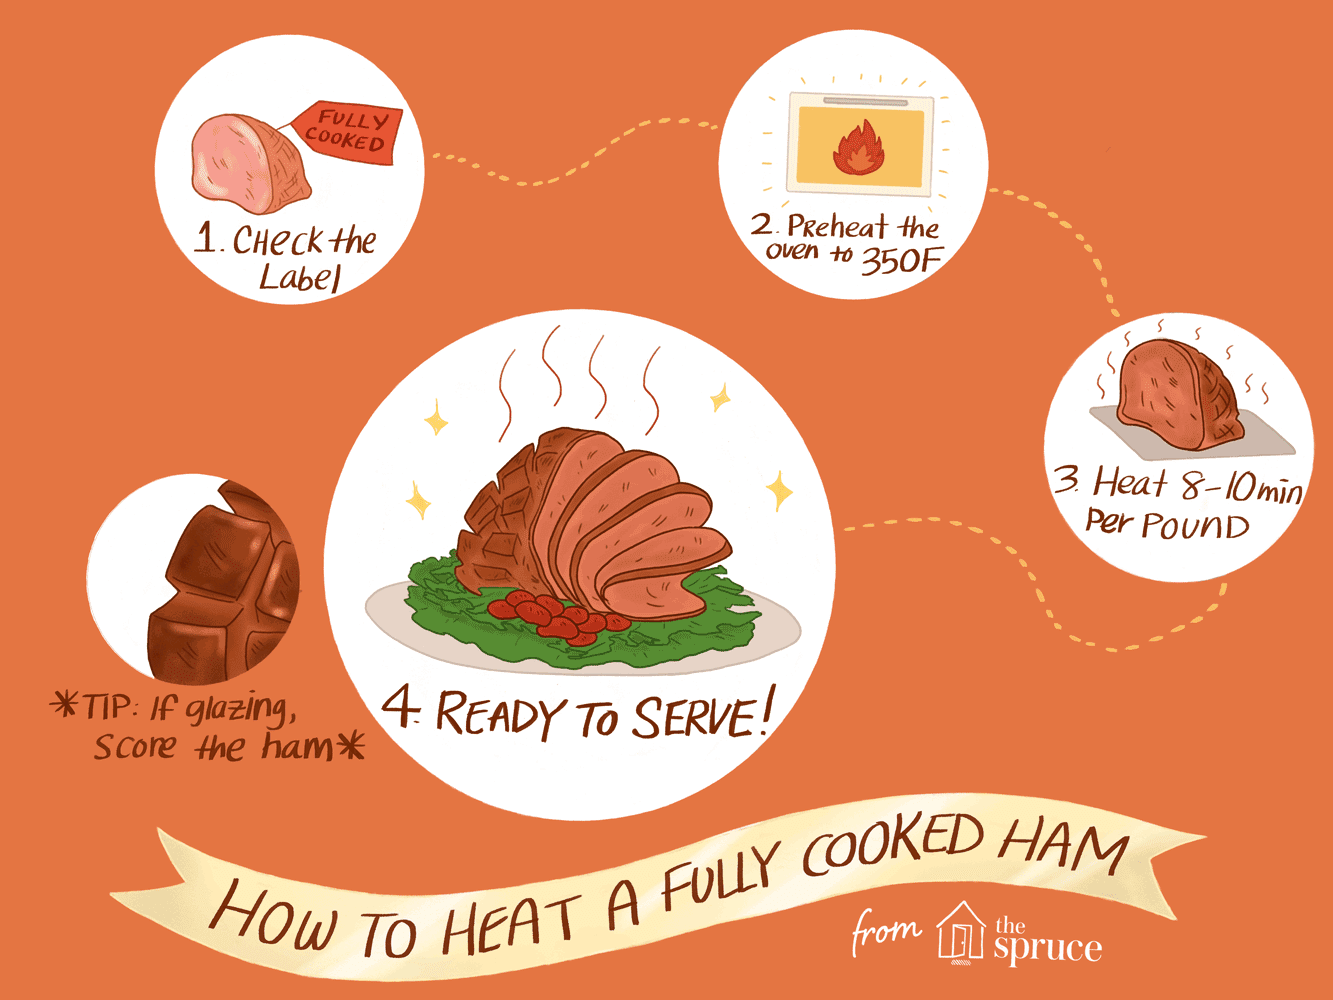 How To Heat A Fully Cooked Ham